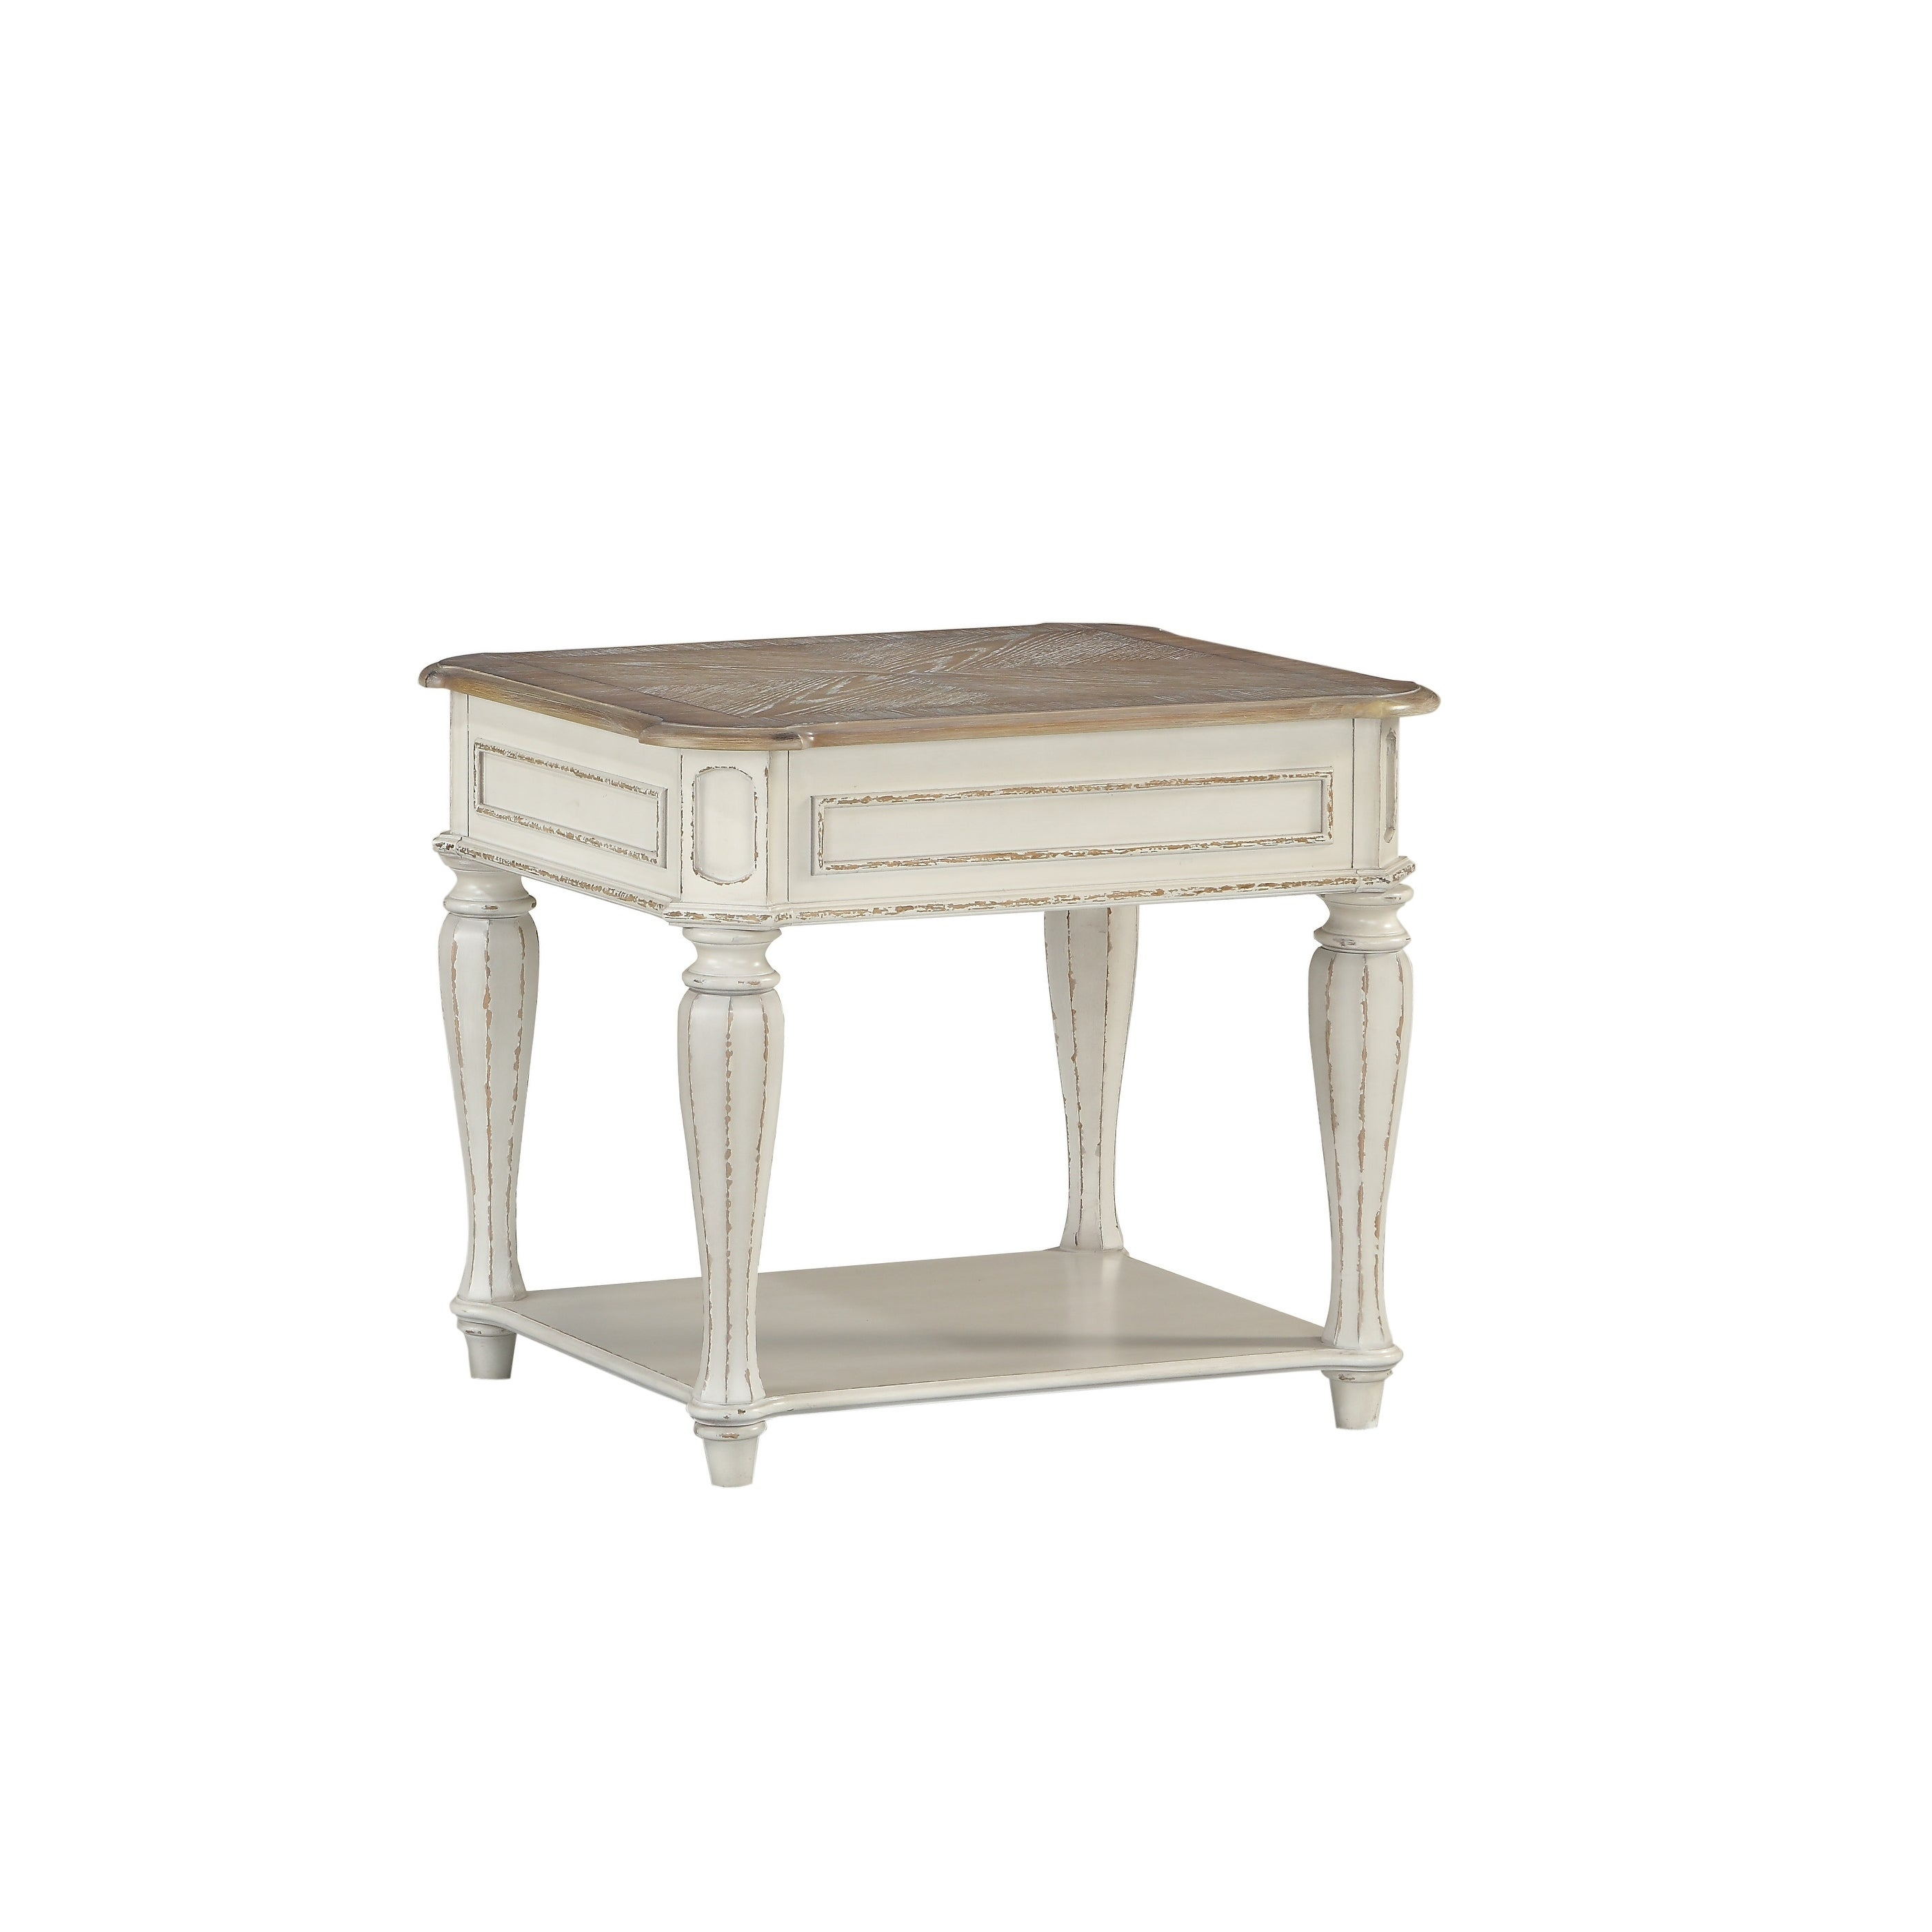 standard furniture stevenson manor white wood end table distressed finish tables free shipping today round sectional sofa hooker crown pet crate west elm industrial storage